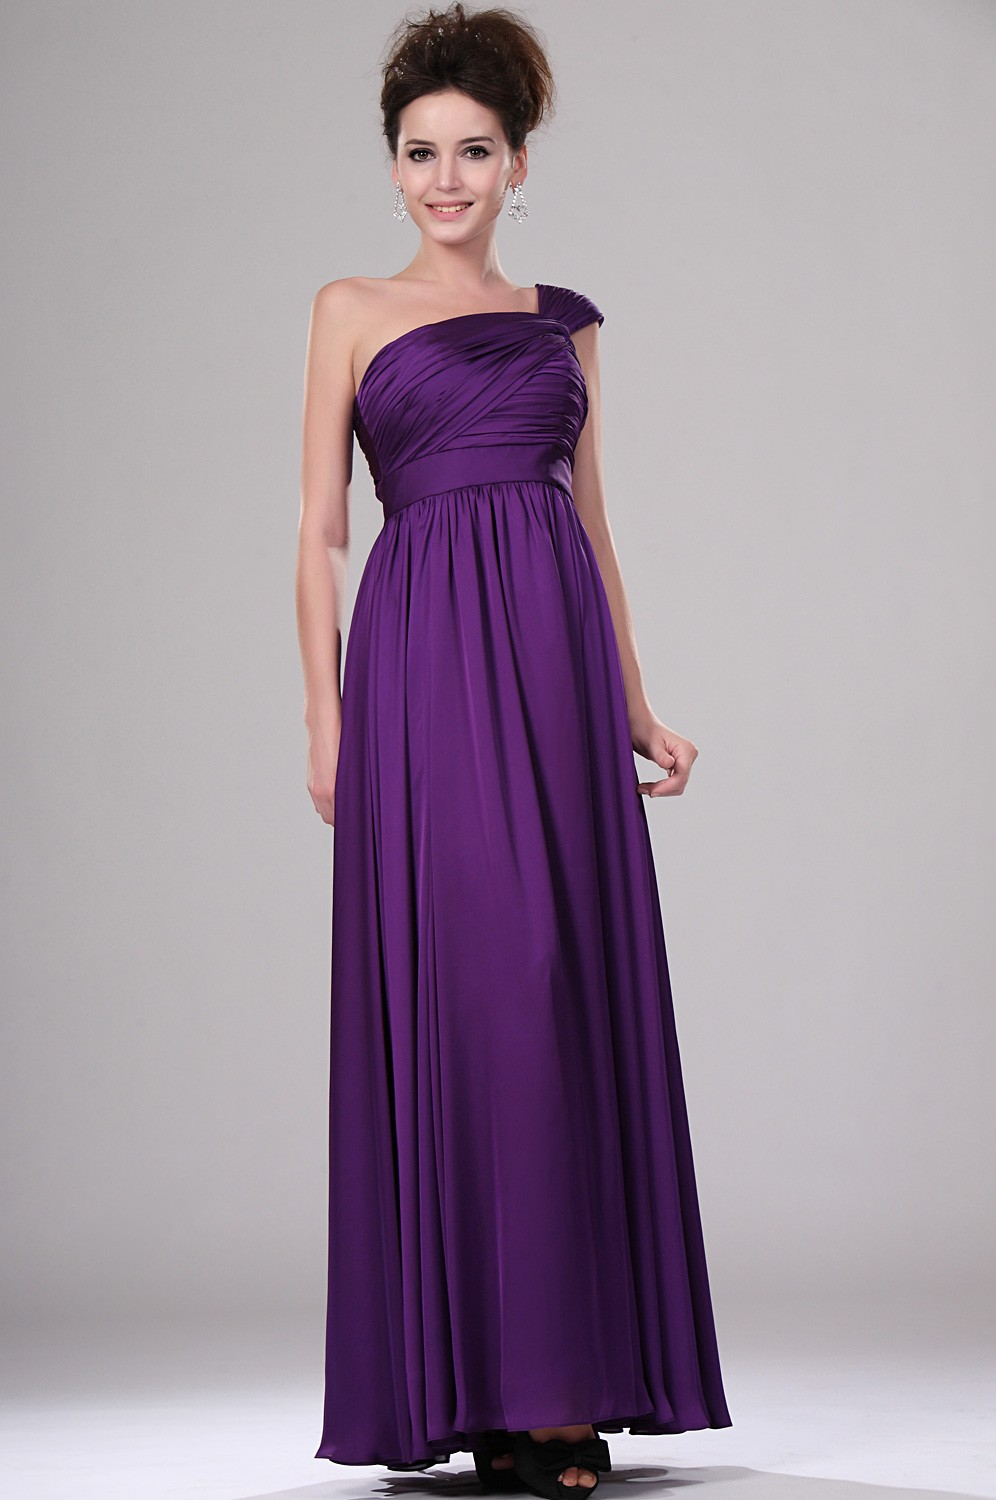 Purple elegant long one shoulder evening dress 2015 for Purple plus size dresses for weddings